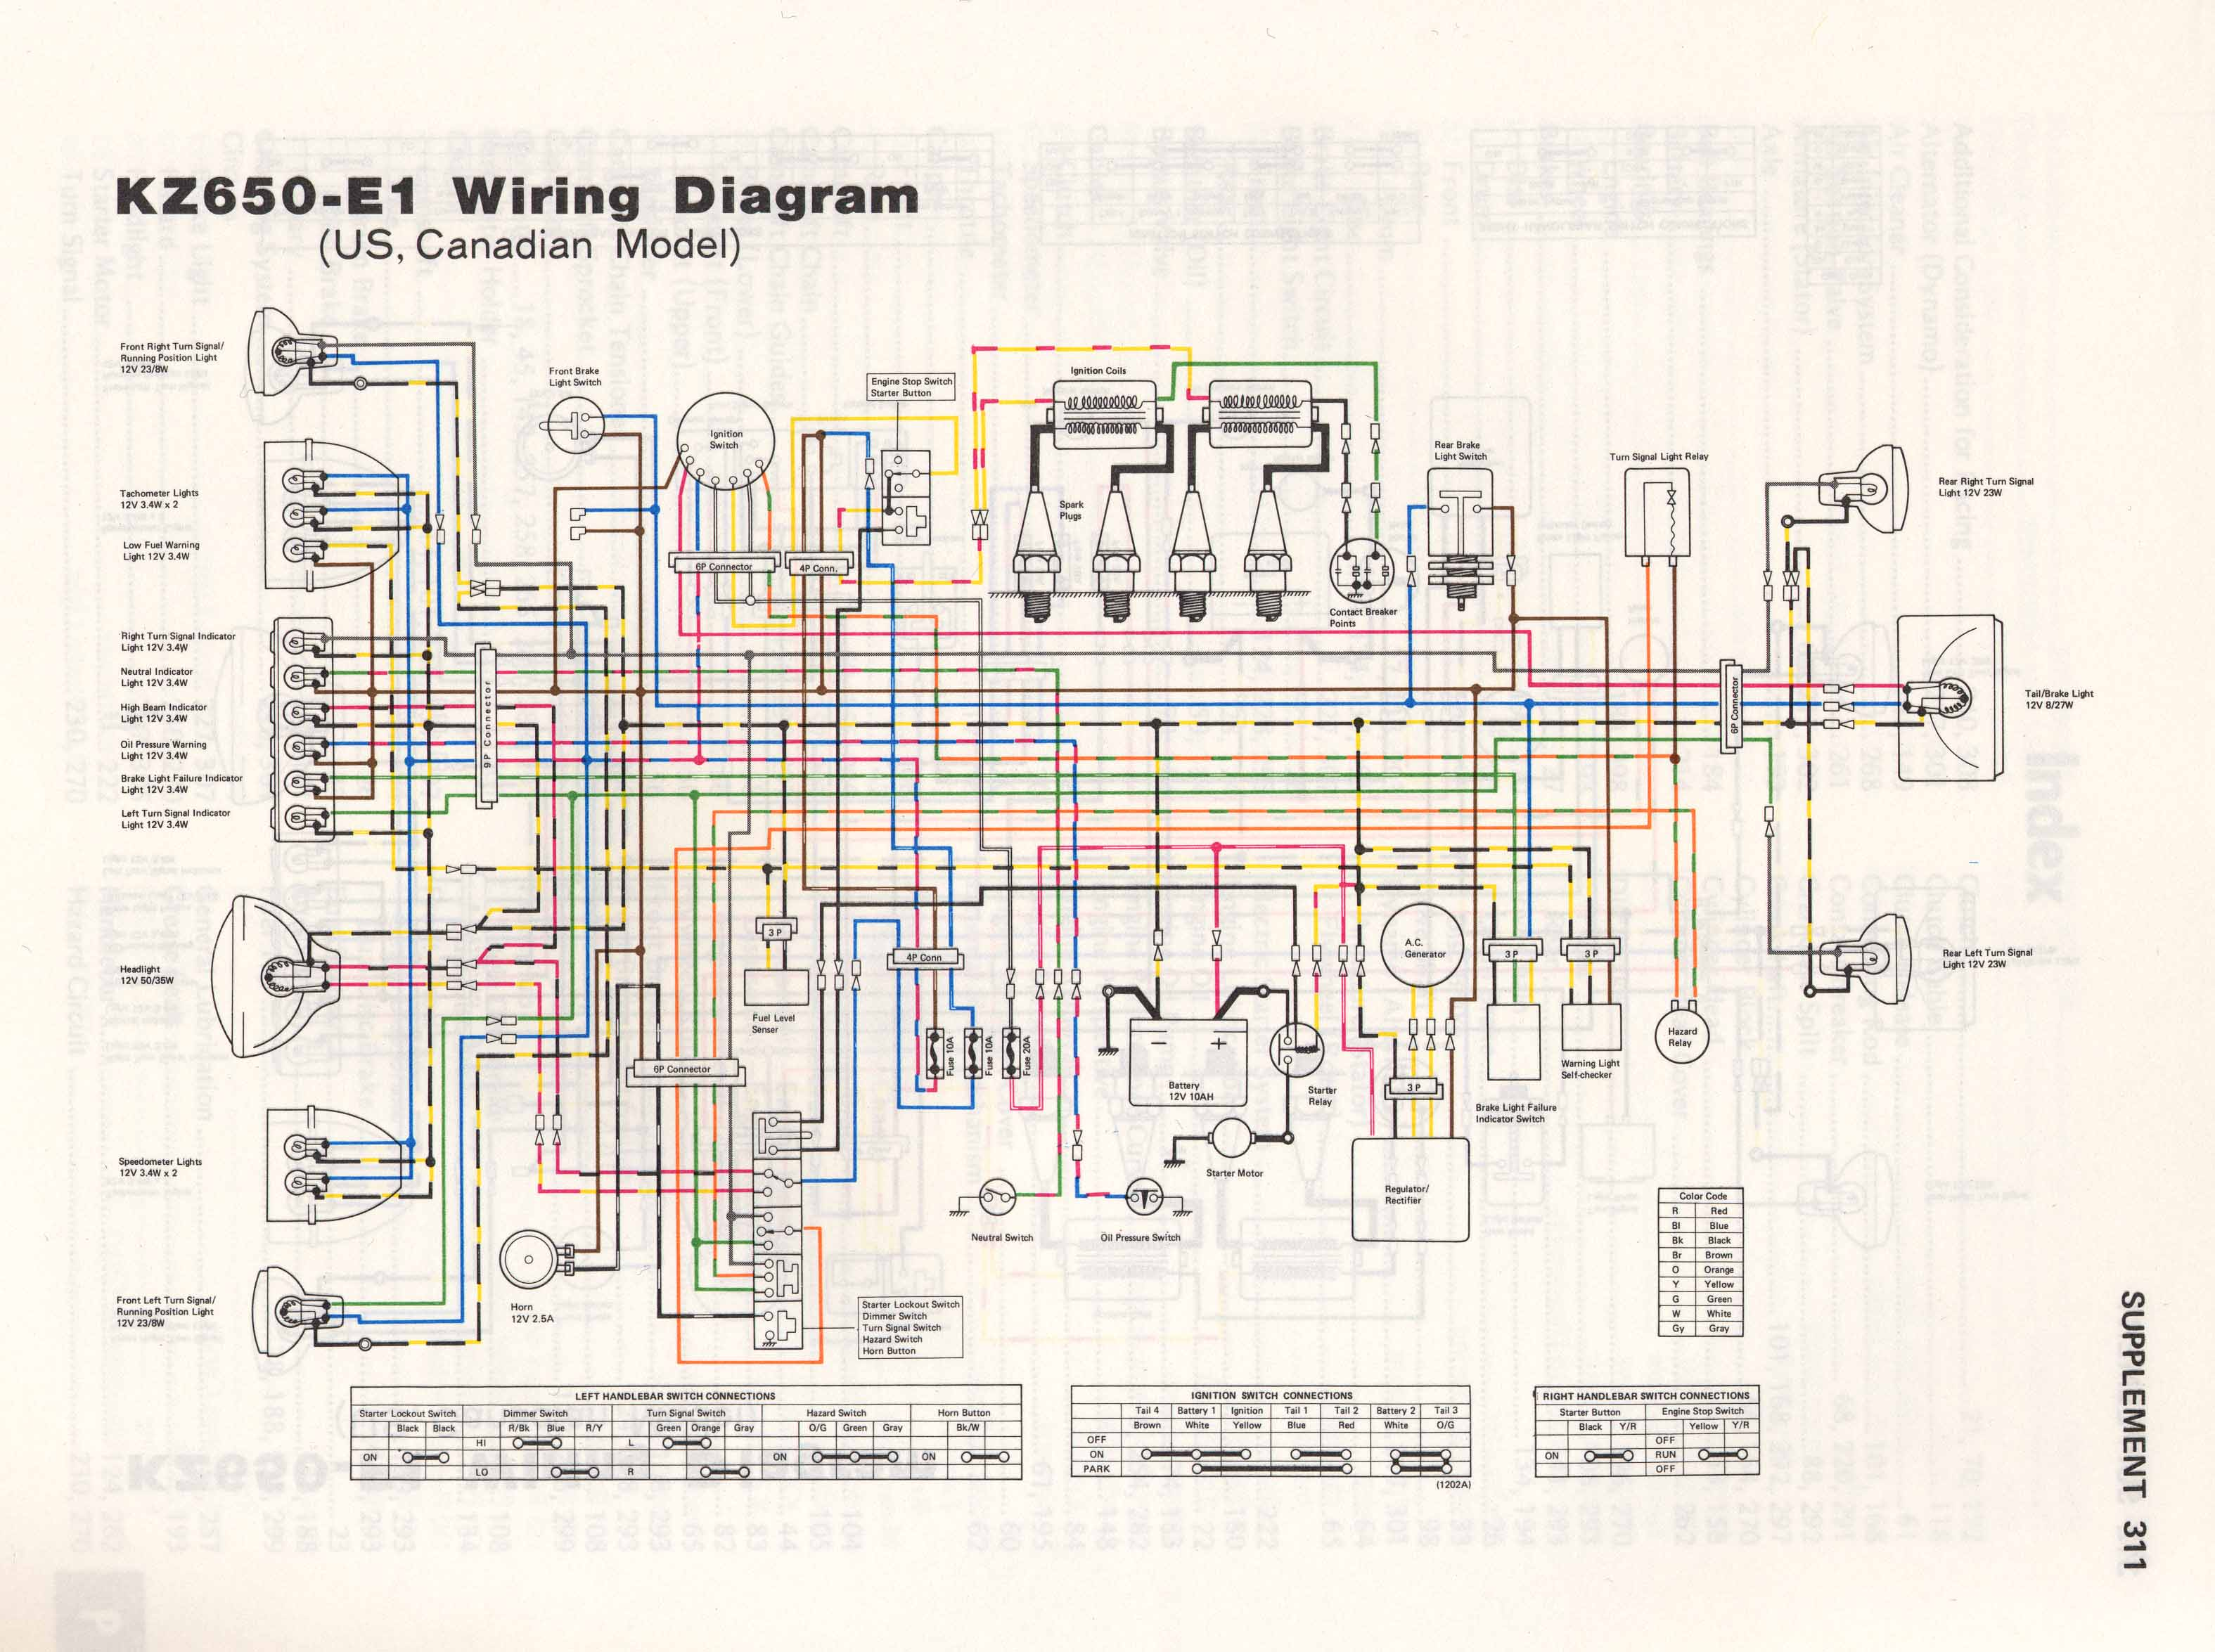 1977 kawasaki kz1000 wiring diagram visual studio create class basic repair scheme